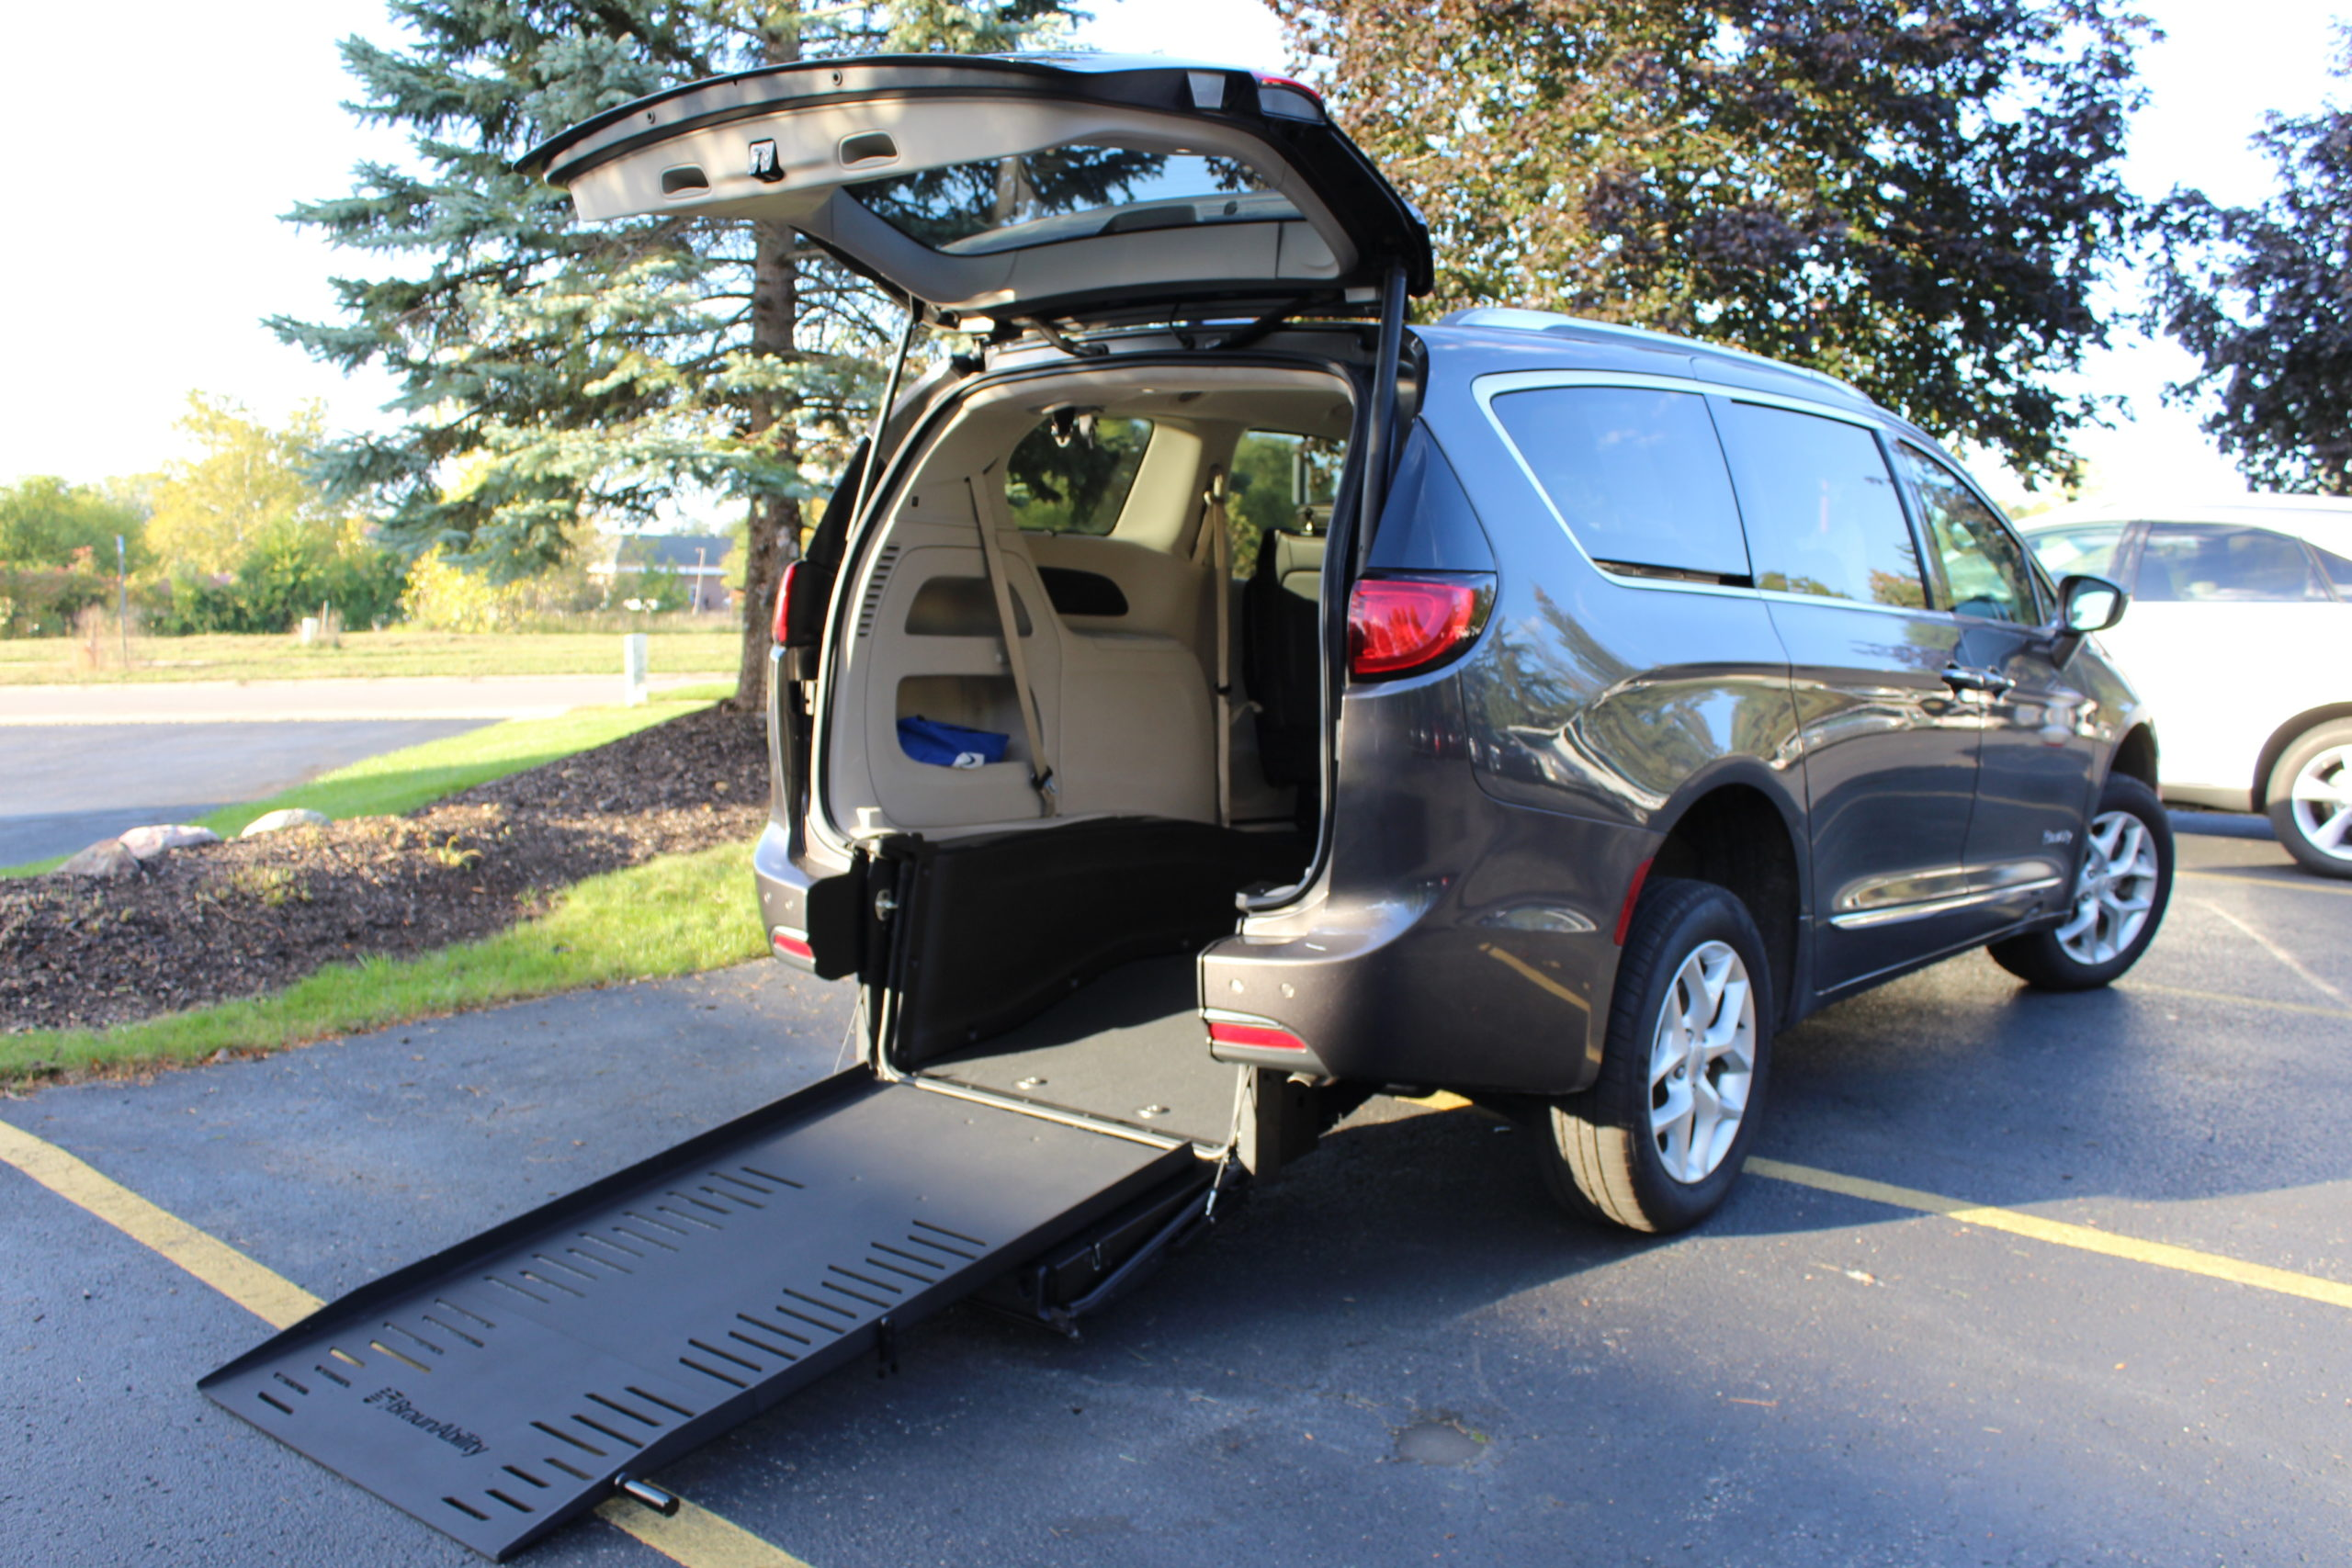 2017 Granite Chrysler Pacifica Touring L Plus with BraunAbility RE Conversion